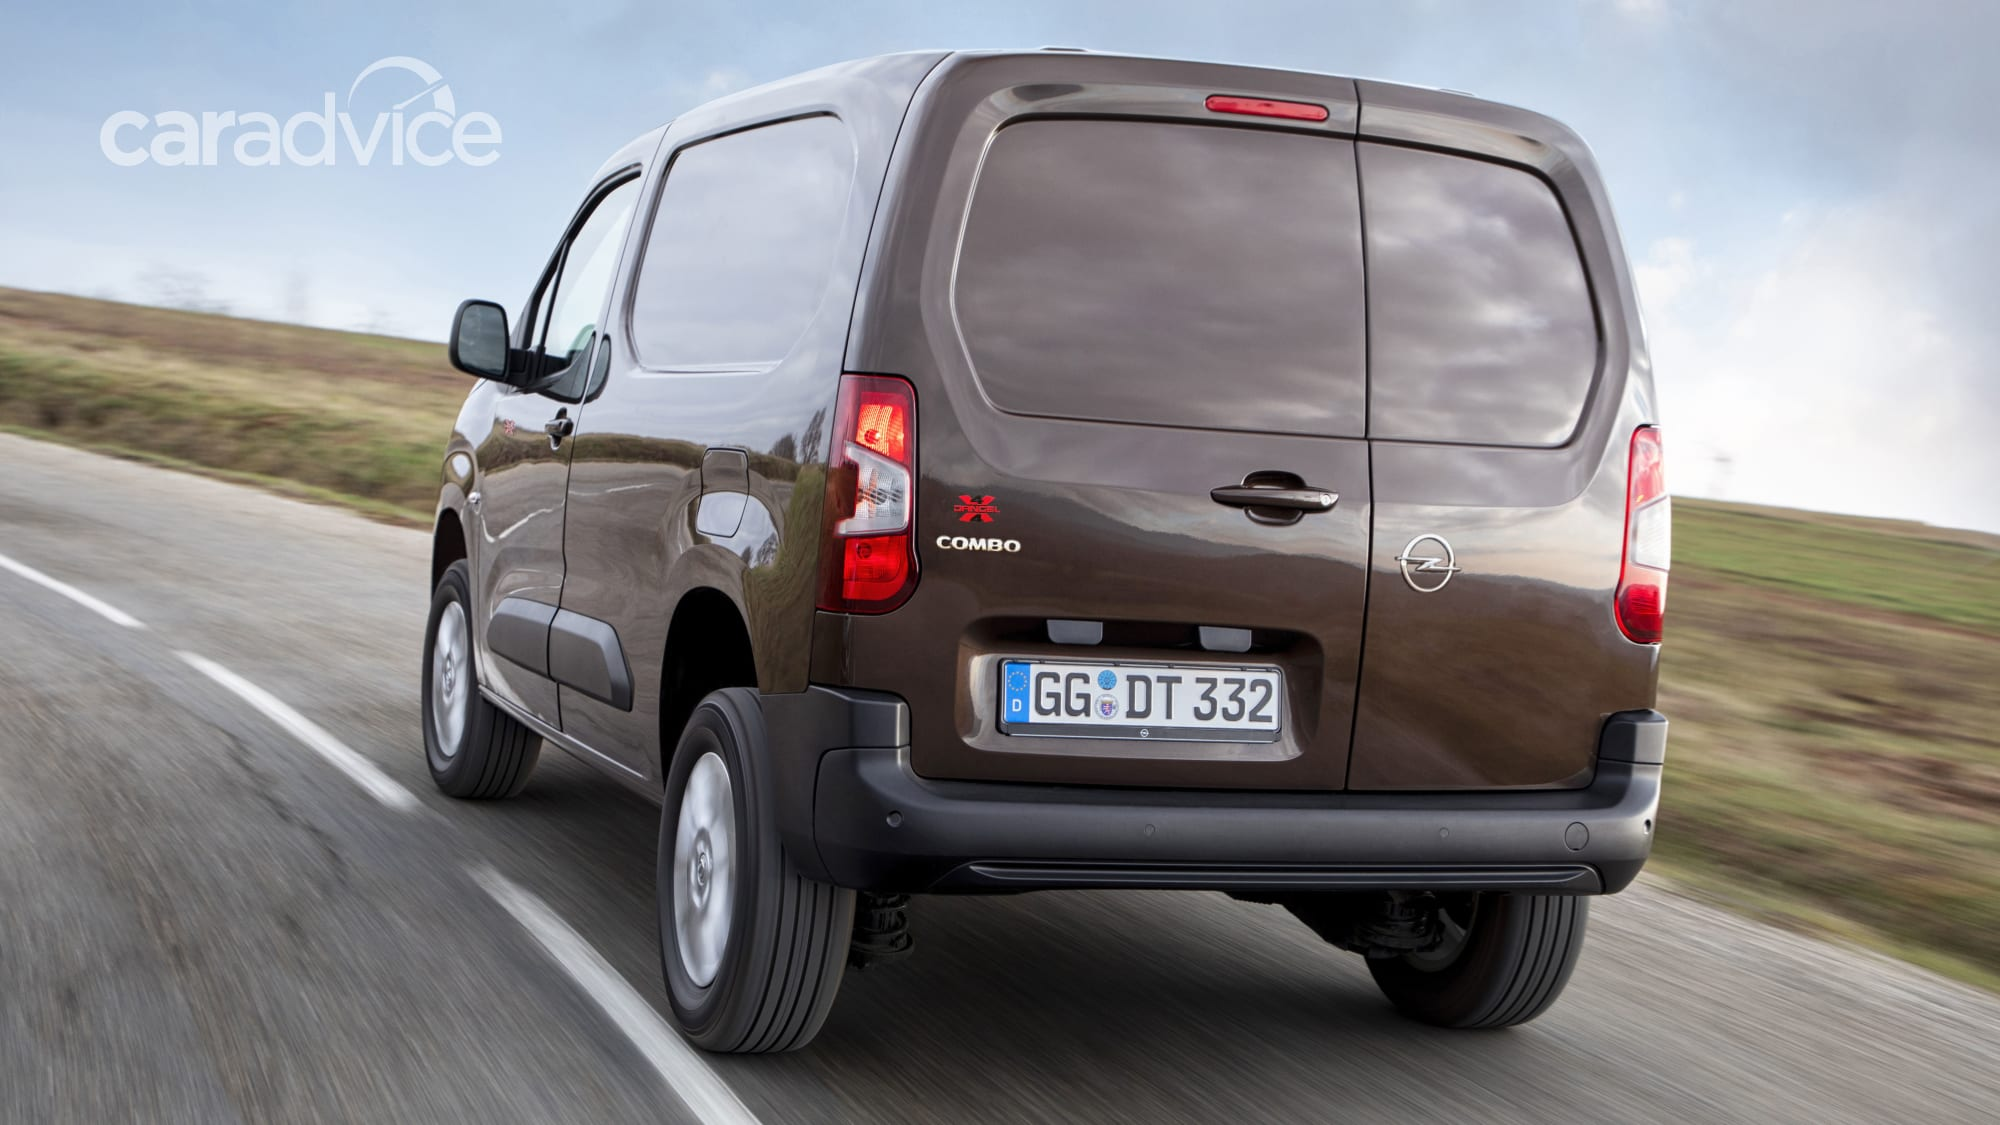 2019 Opel Combo 4x4 unveiled | CarAdvice